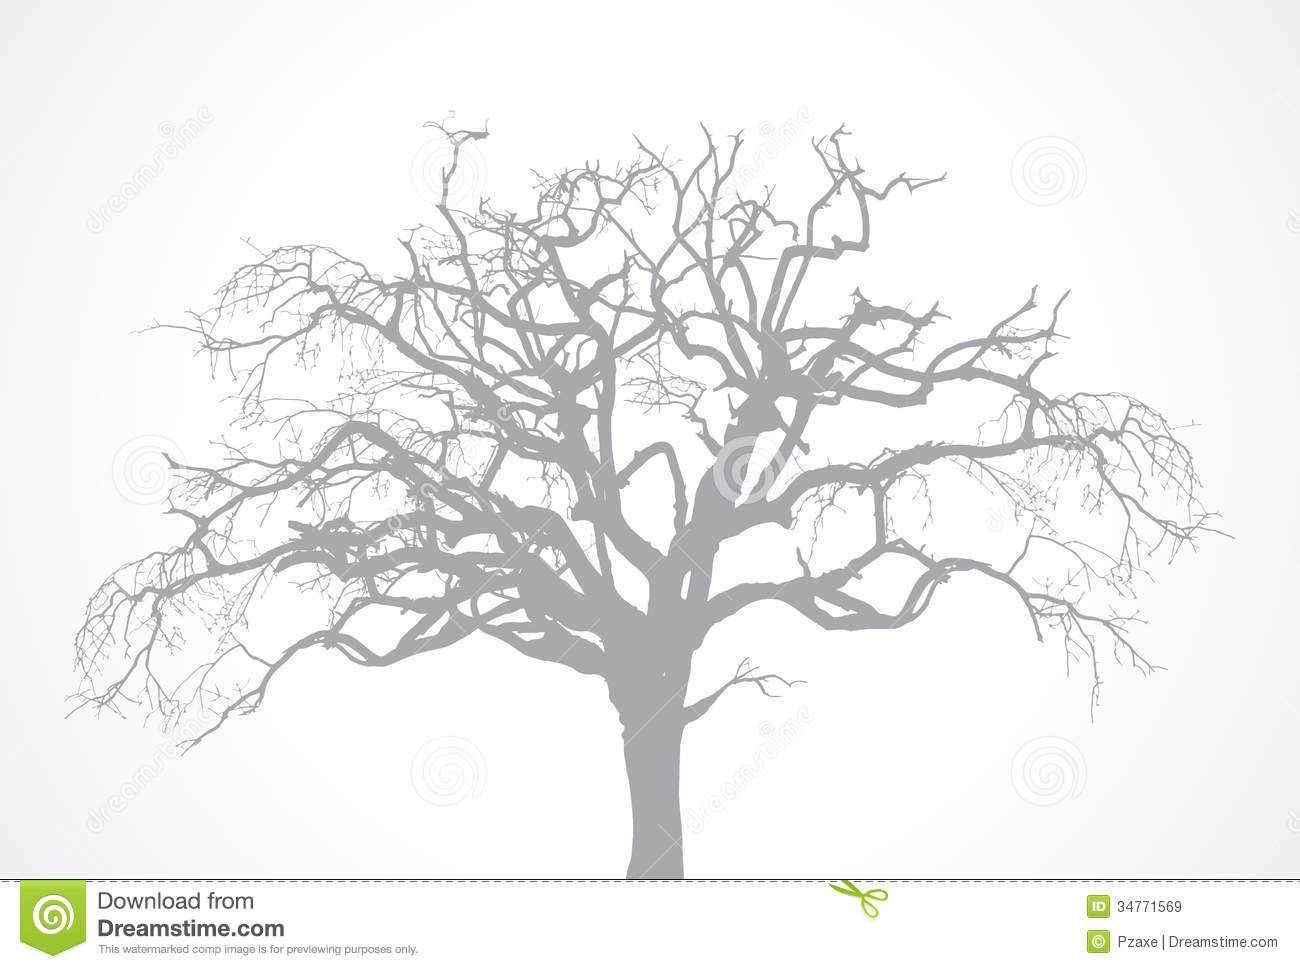 Oak Tree Vector Free Download Vector bare old dry dead tree